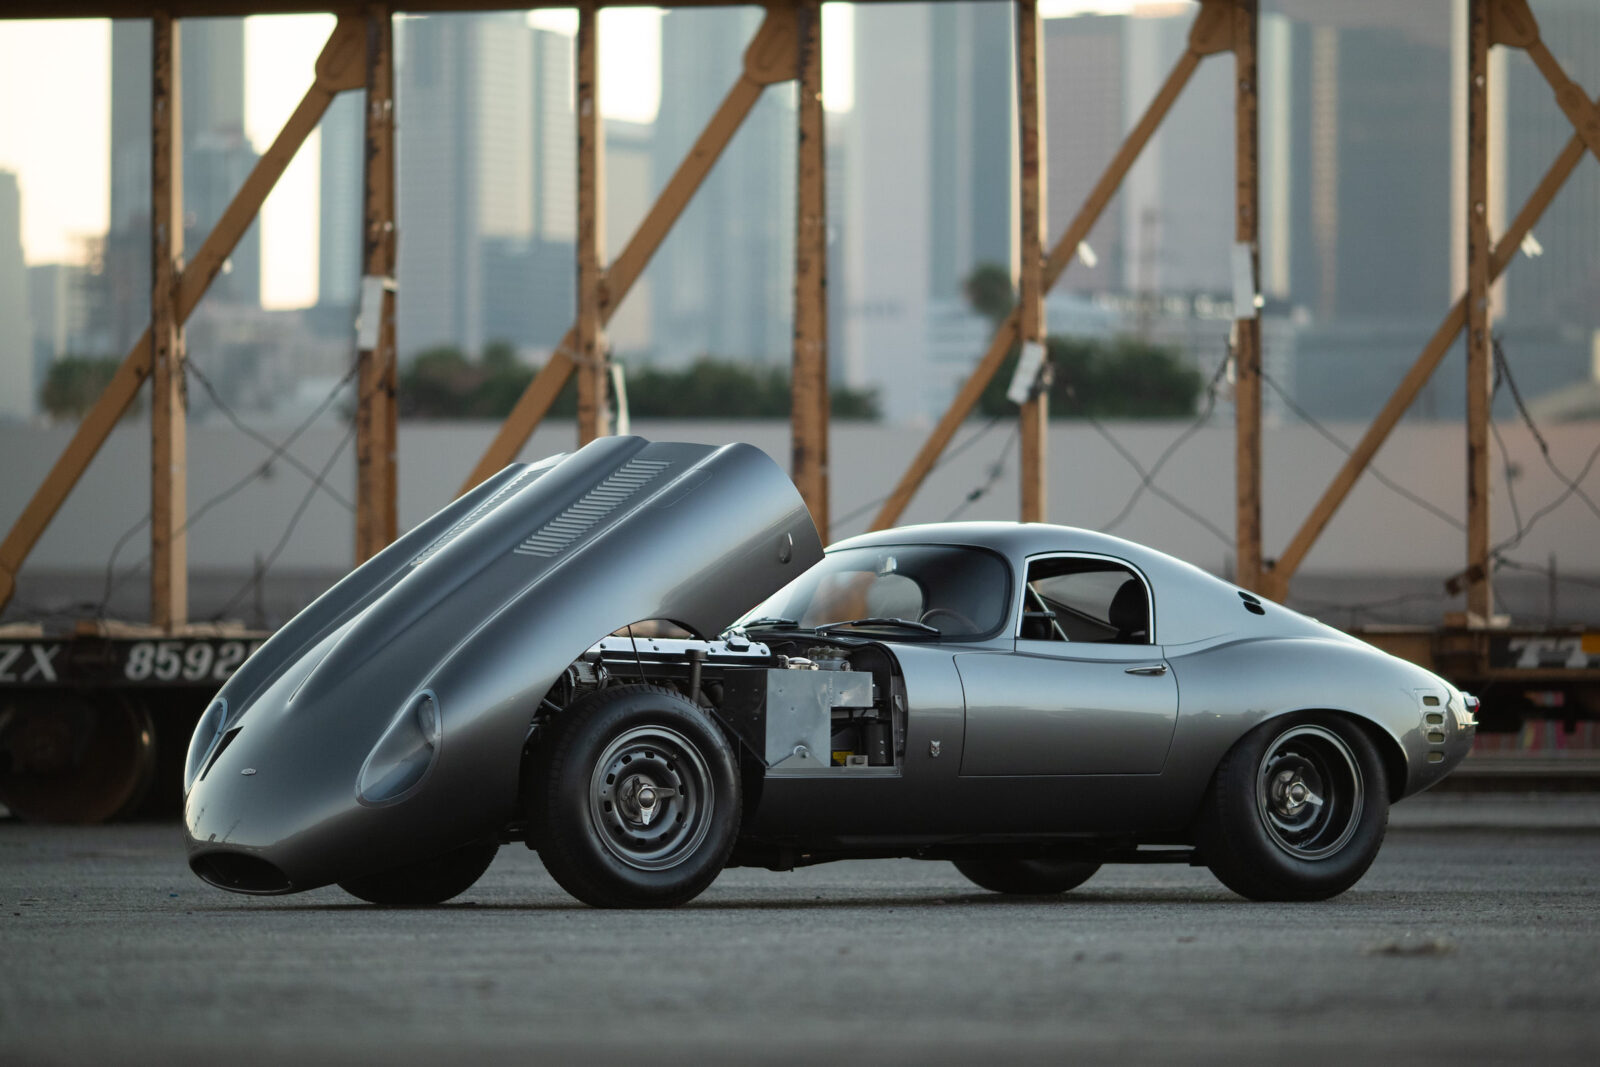 Low Drag Jaguar E-Type by Marco Diez - Is The Low Drag The Most Beautiful Car Ever?